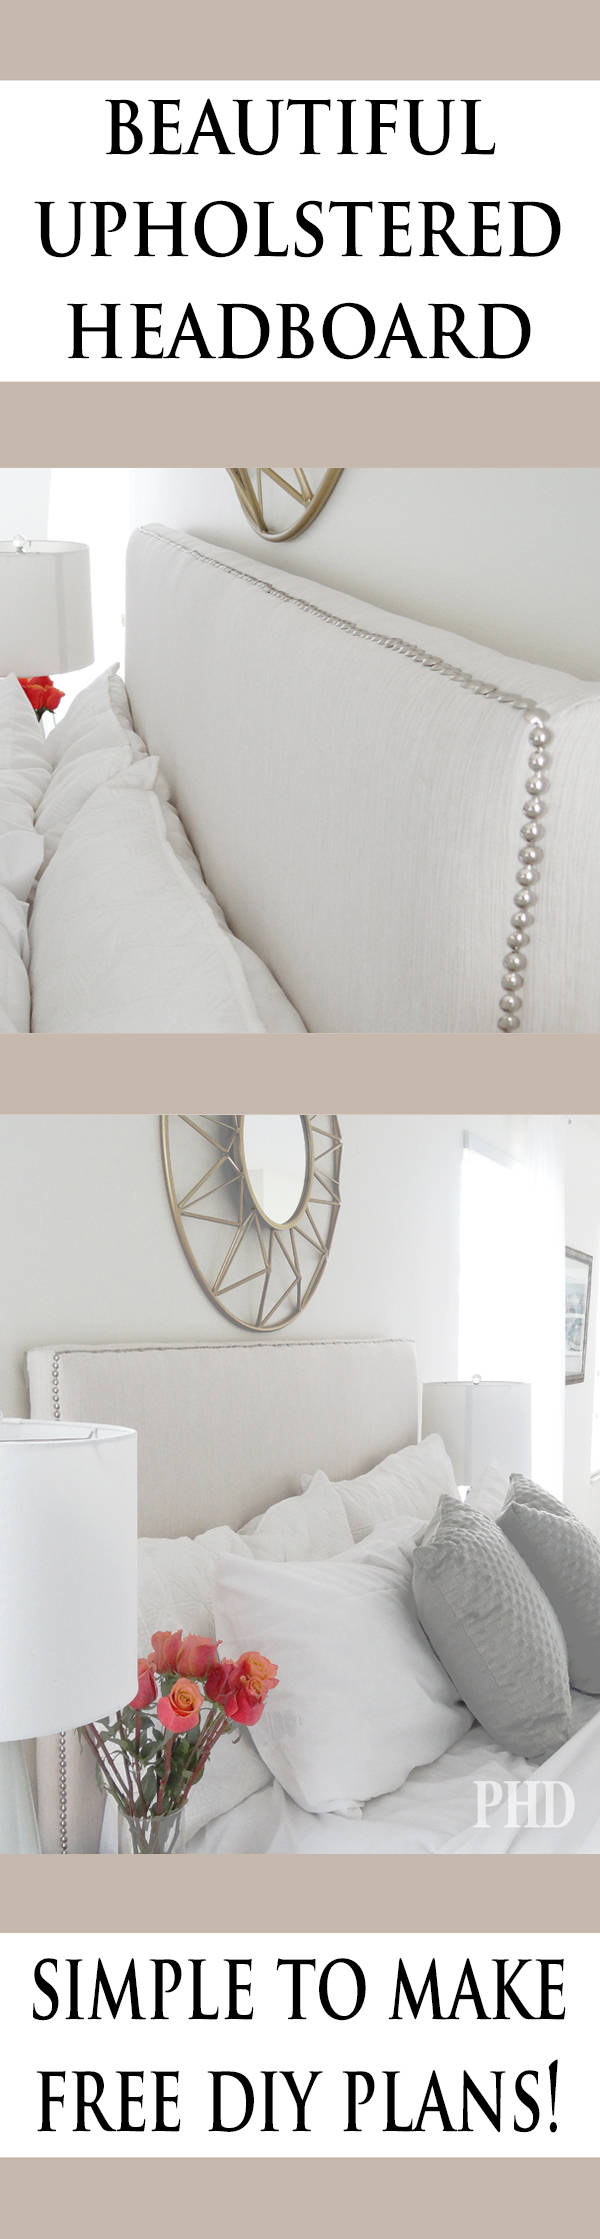 beautiful-diy-upholstered-headboard-tutorial